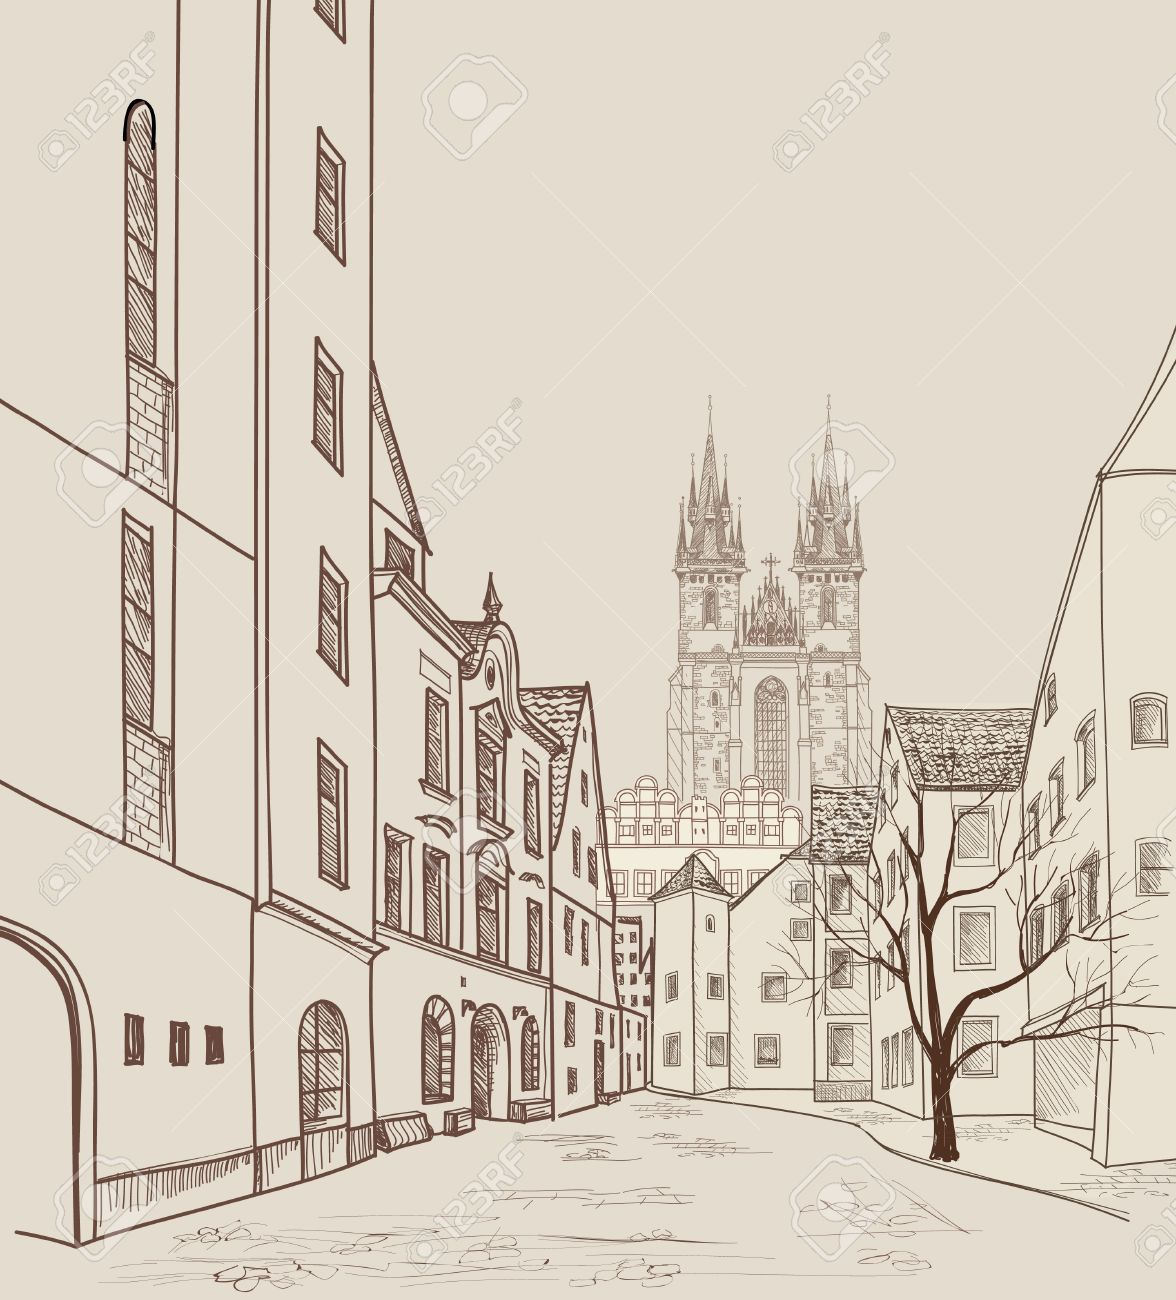 Old Town of Prague, Czech Republic. Pedestrian street in the old european city with tower on the background. Historic city street. Travel Prague bakcground. Stock Vector - 44973823